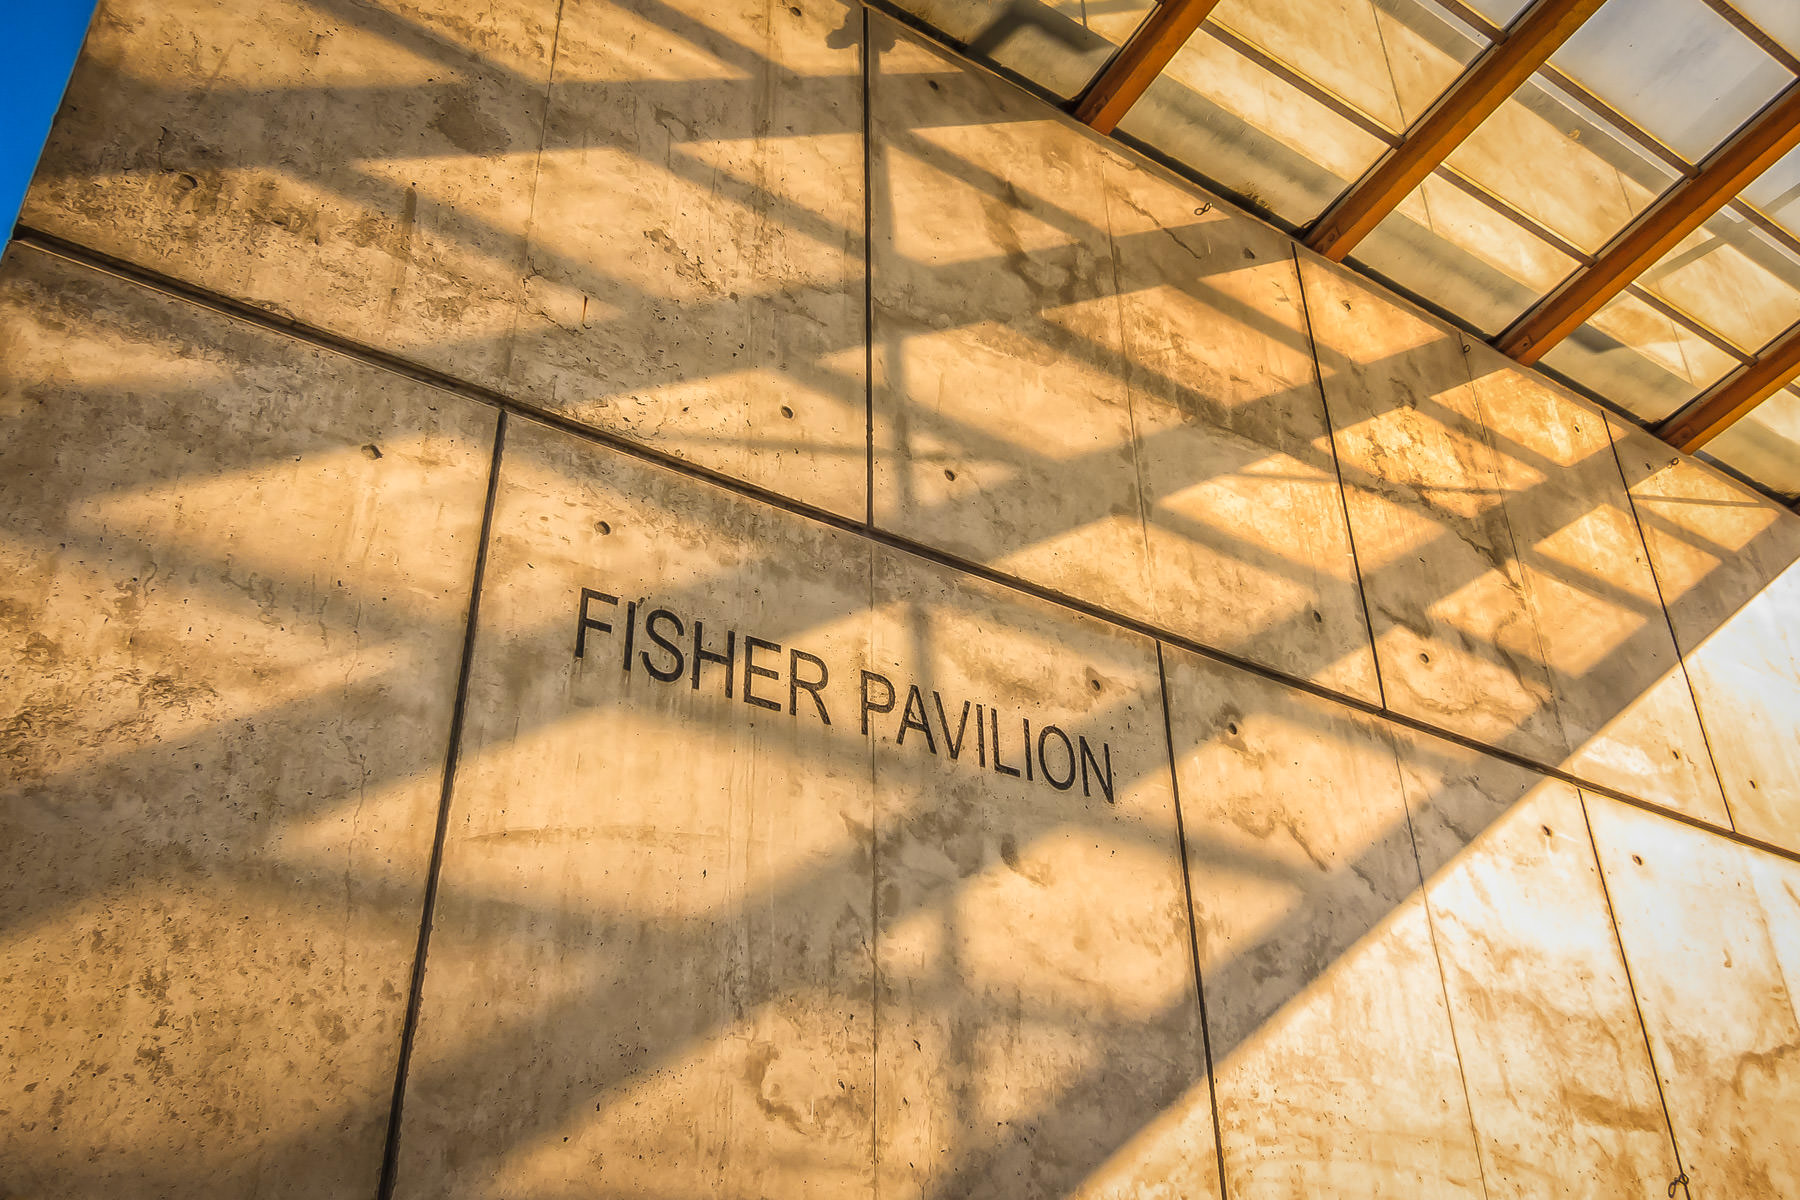 The morning sun throws shadows over the engraved name of the Fisher Pavilion at the Seattle Center.